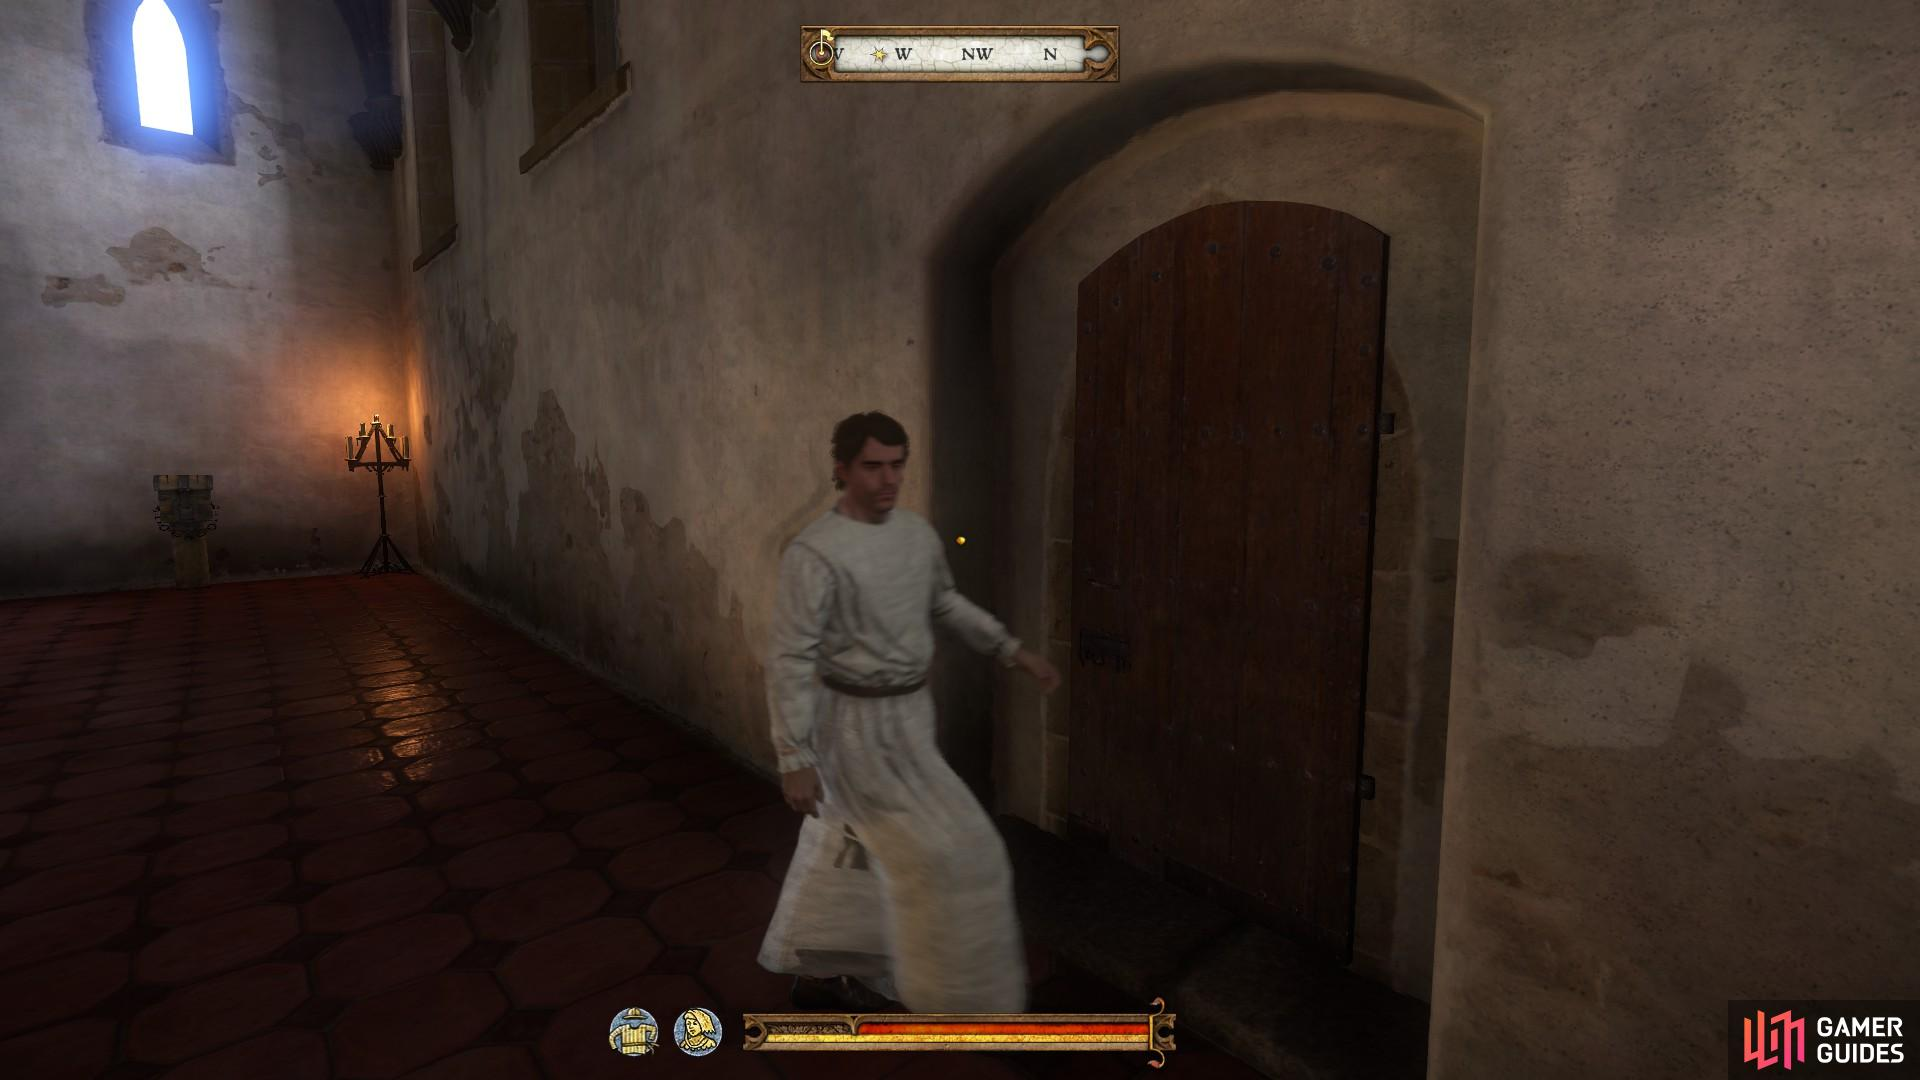 Follow Pious out of the monastery after he has dropped the blood.